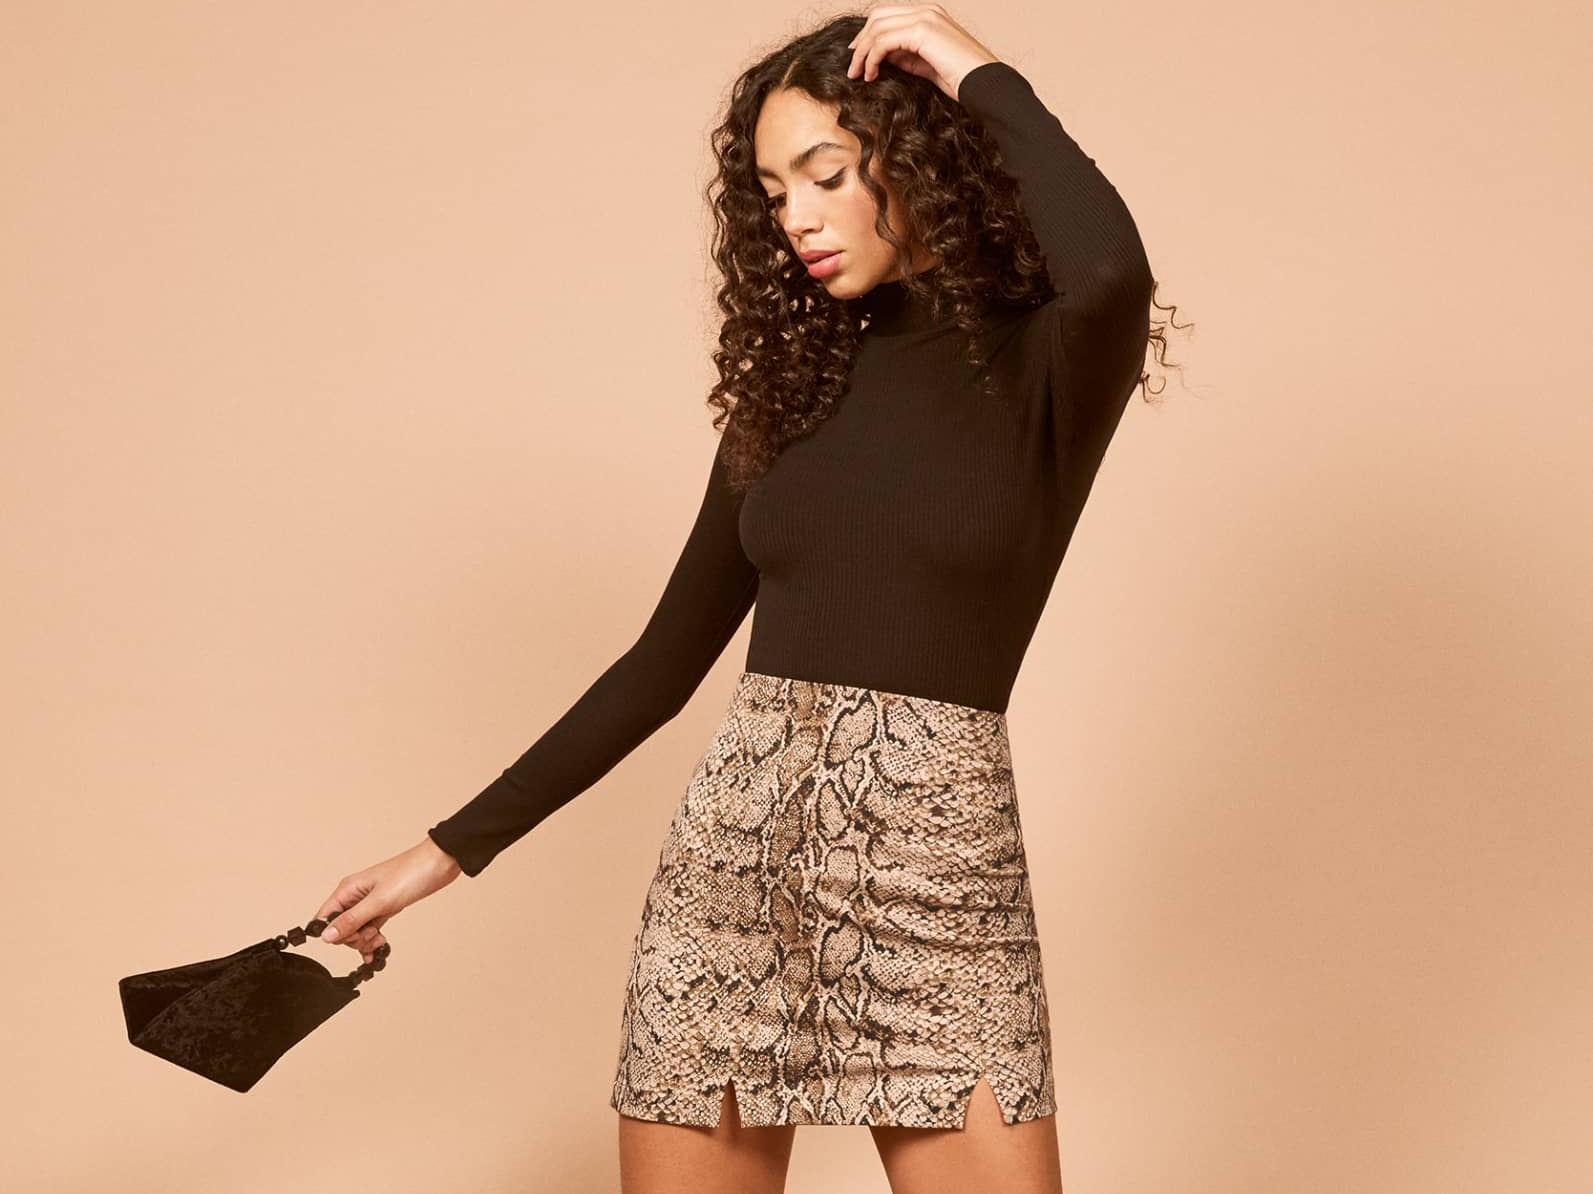 15 Short Skirts That Prove It's Not Length That Matters | I AM & CO®